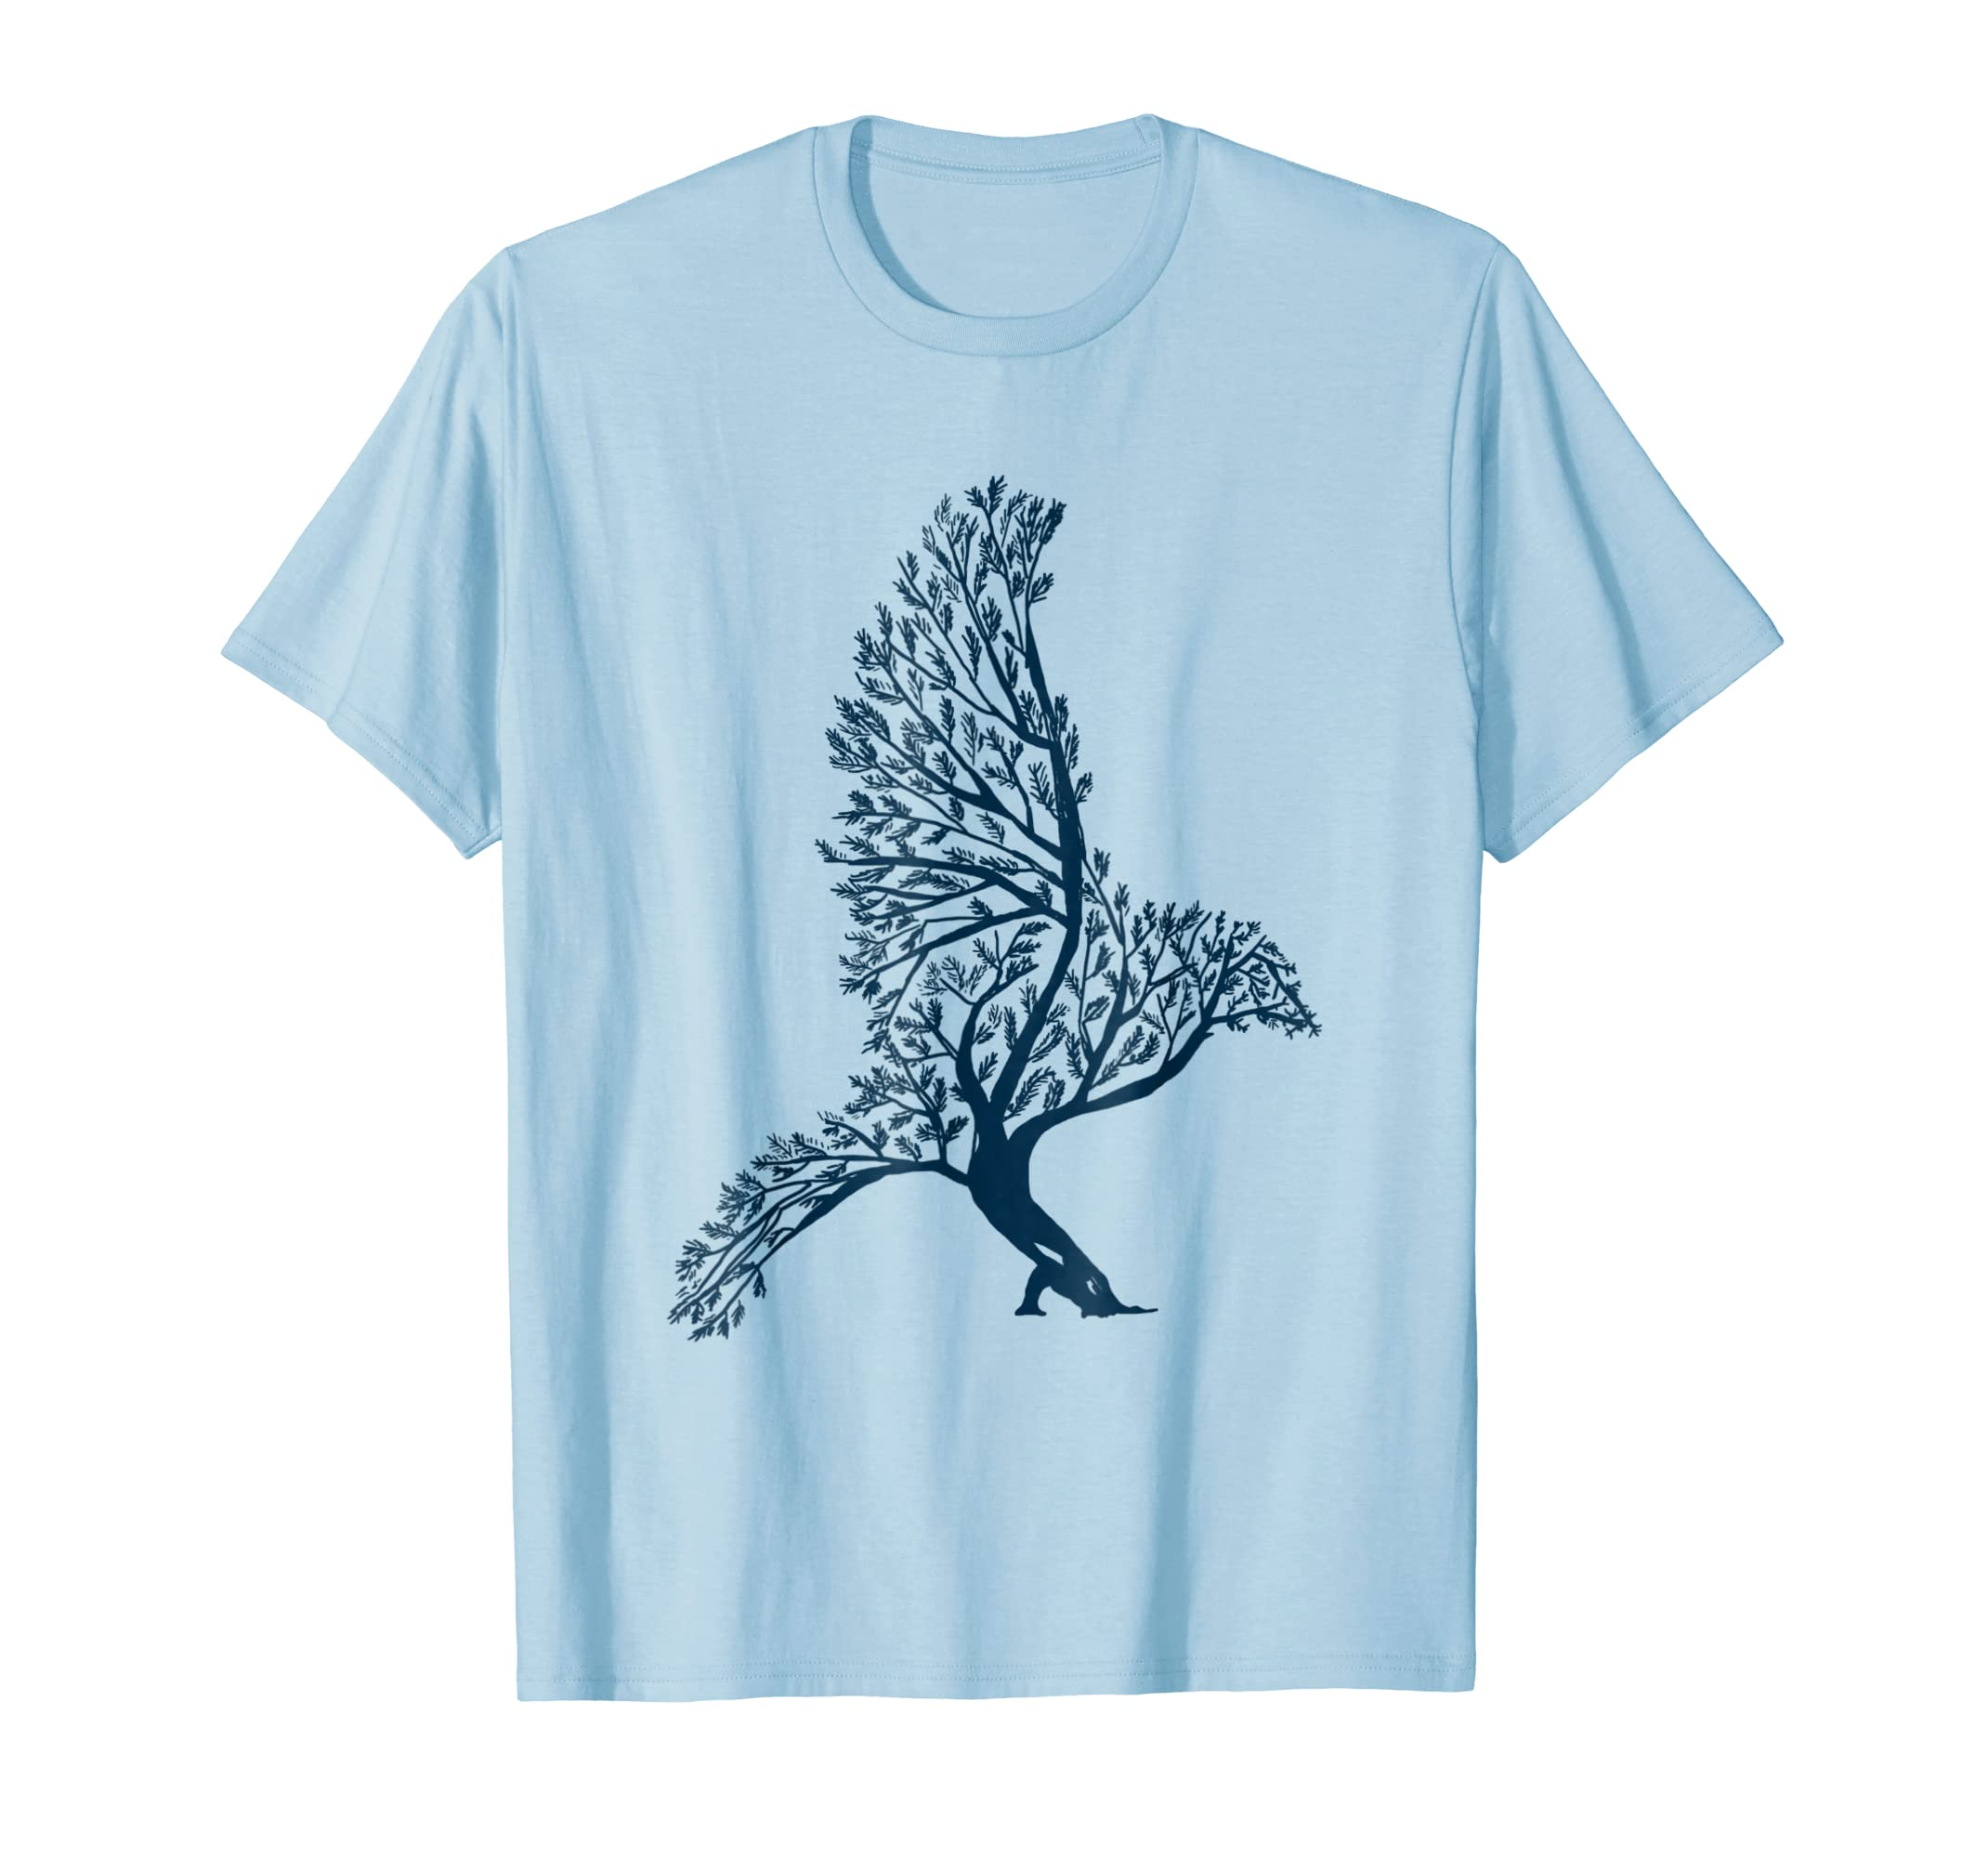 Bird Shirt Bonsai Tree Bird Nature Wild Cool Gift T shirt-azvn